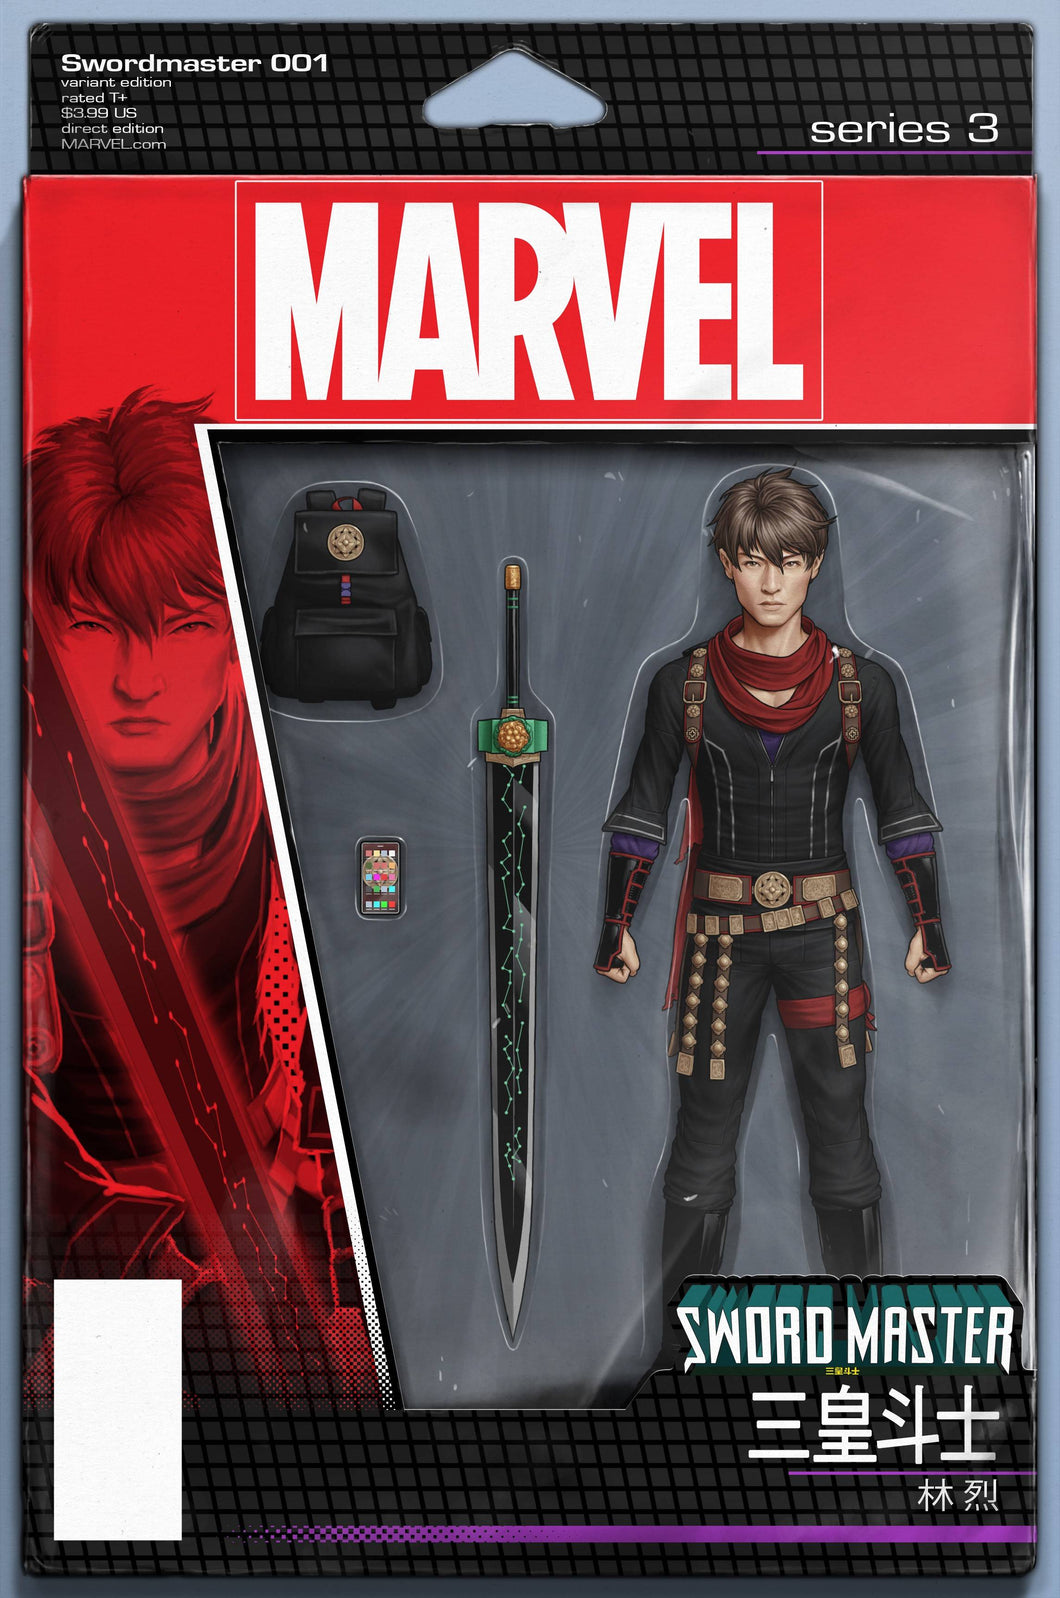 SWORD MASTER #1 CHRISTOPHER ACTION FIGURE VARIANT 07/24/19 FOC 07/01/19